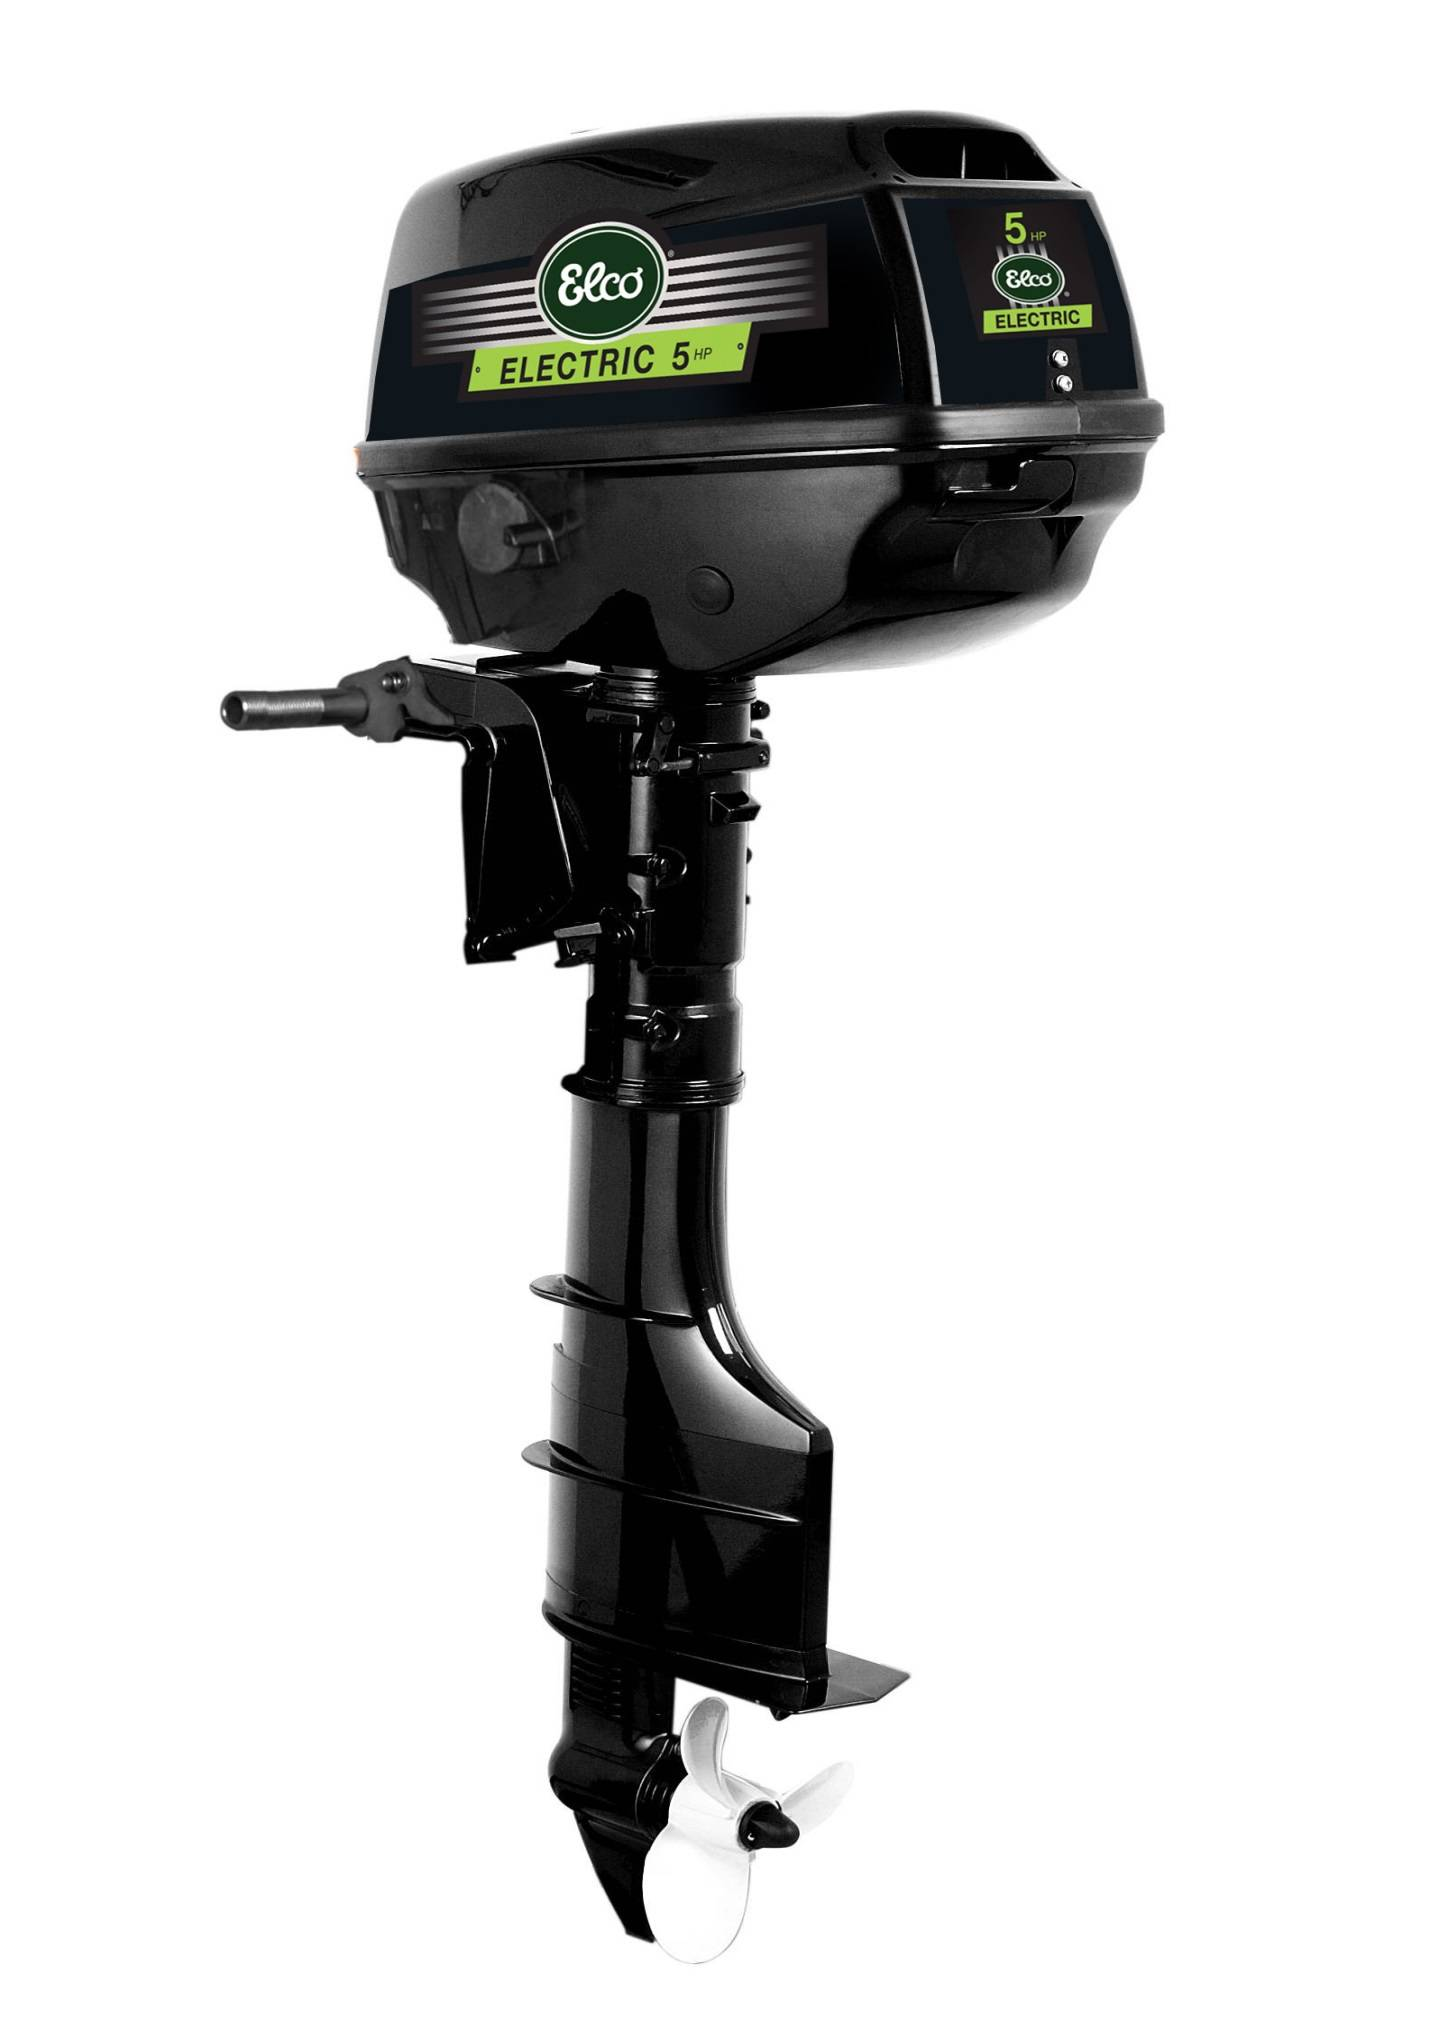 Electric Trolling Motors Range And Battery Requirements